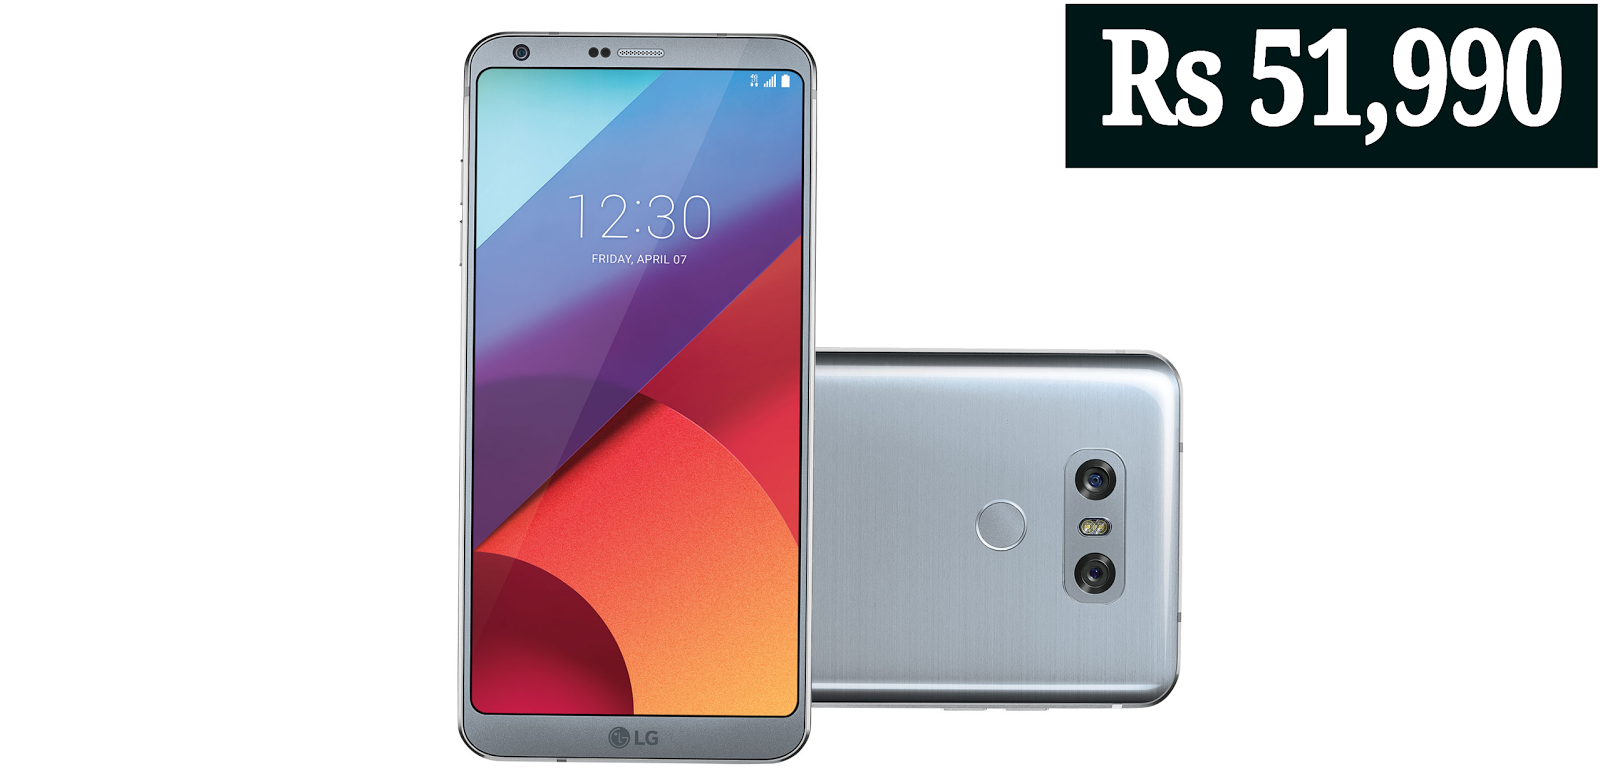 LG G6 specifications,features and price |Mobilespecification8